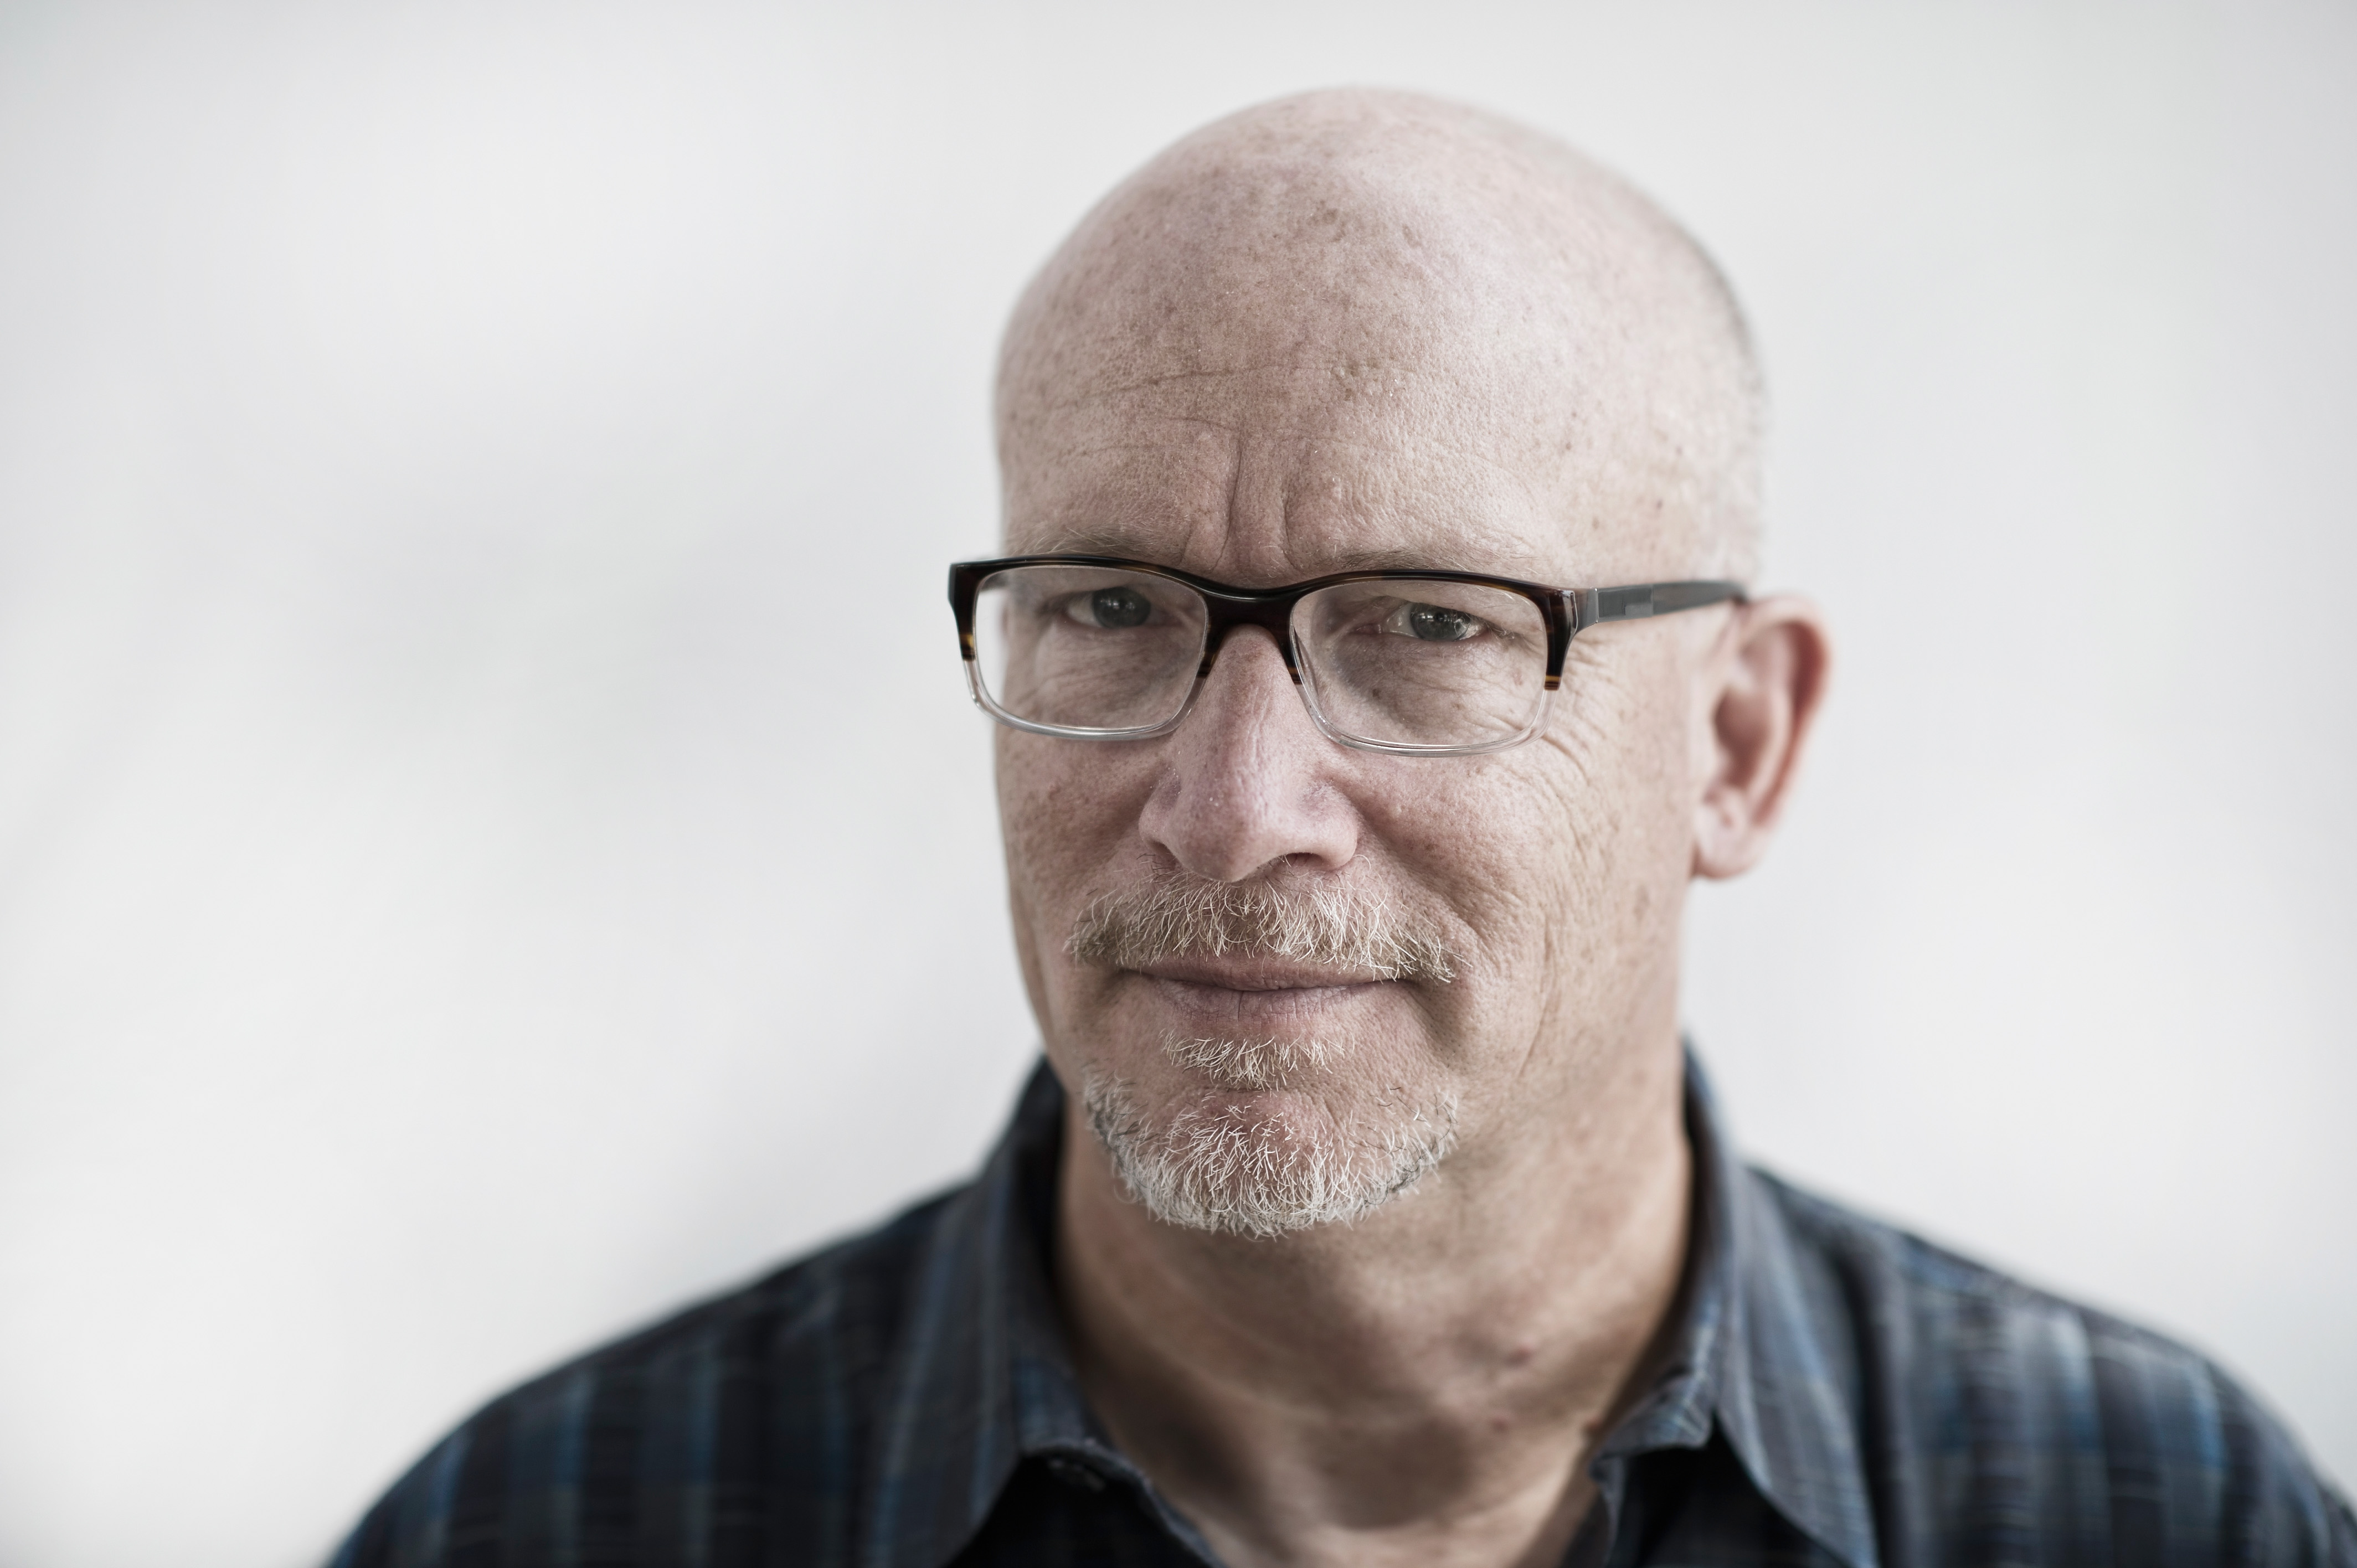 Director Alex Gibney poses during a portrait session at the 70th Venice International Film Festival on Sept. 4, 2013 in Venice.